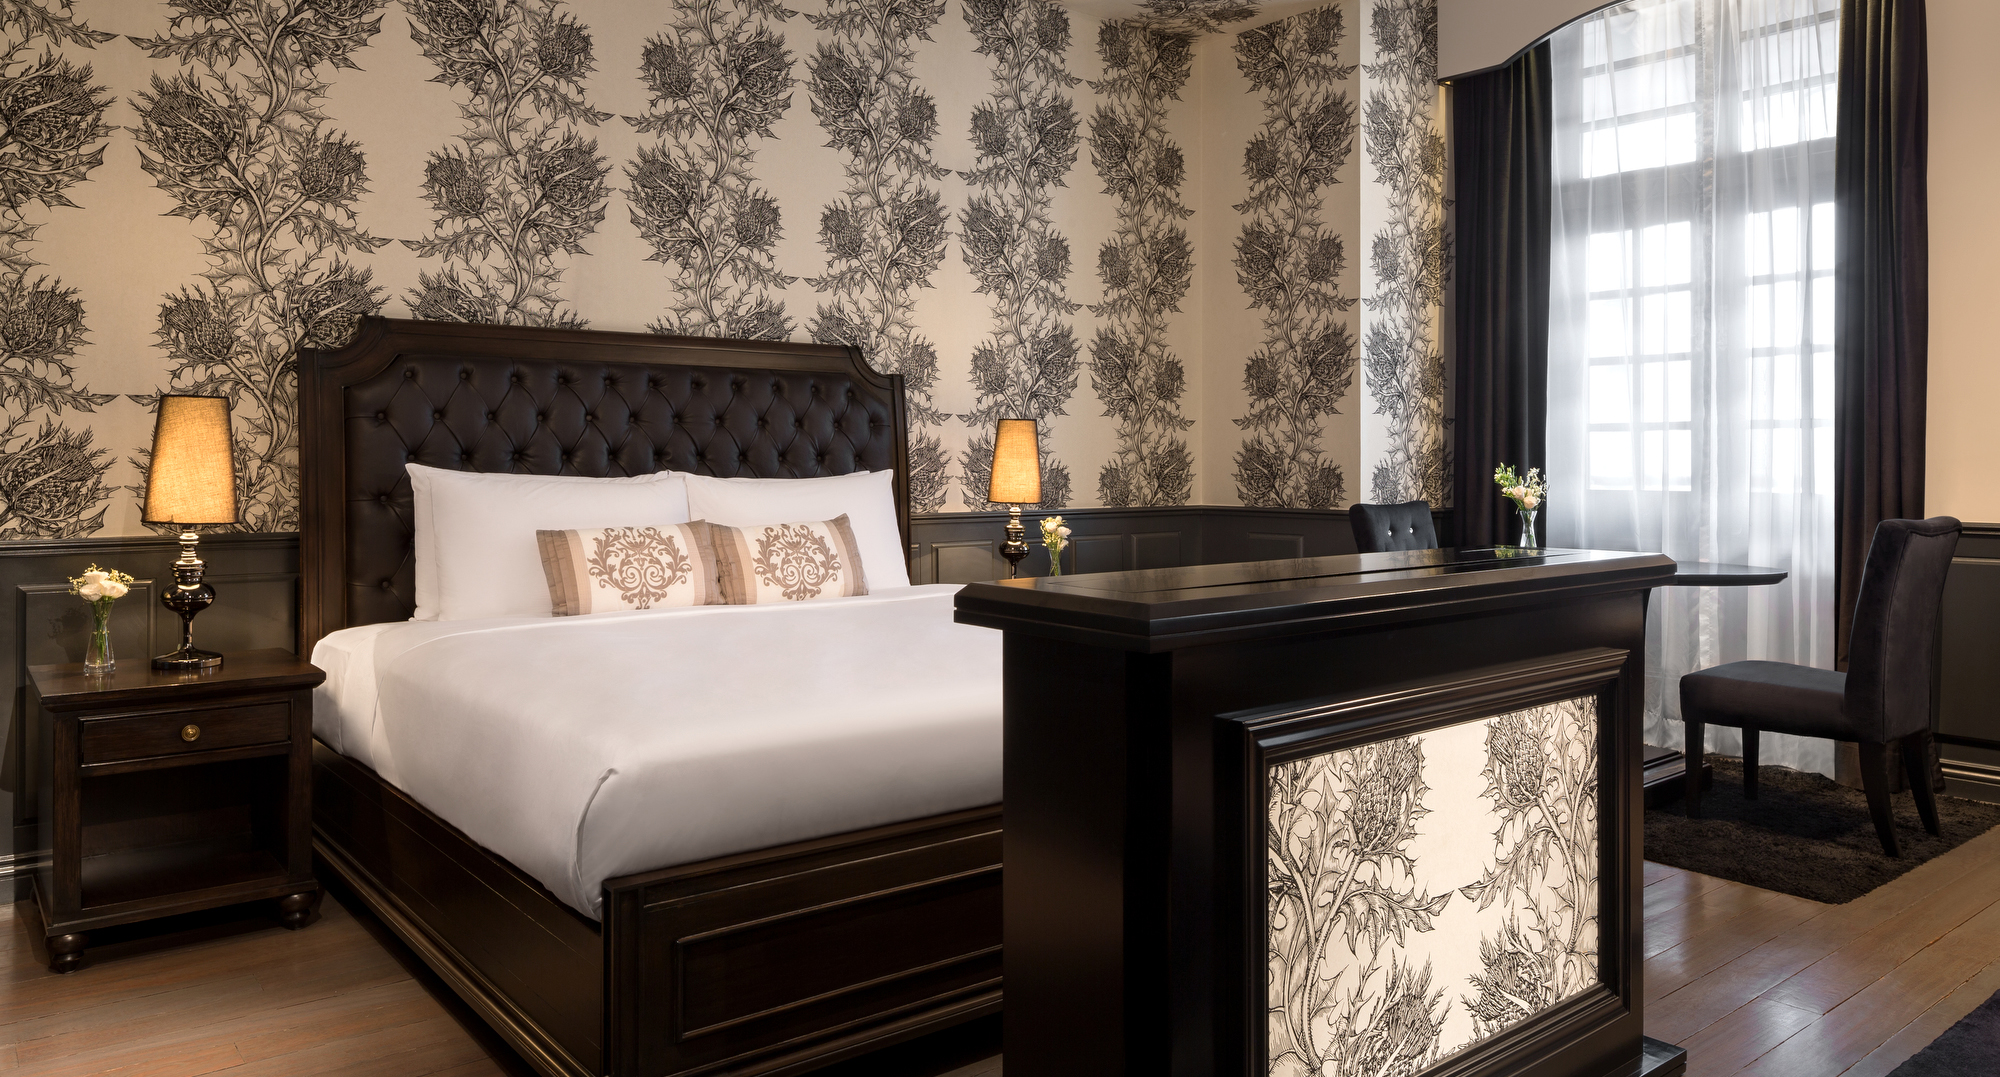 The Most Luxurious Hotel Suites In Hong Kong, by AD Luxury Homes Luxury Hotels to inspire Luxury Homes Hullett House Hotel Suites Luxury Homes Luxury Hotels to inspire Luxury Homes Hullett House Hotel Suites